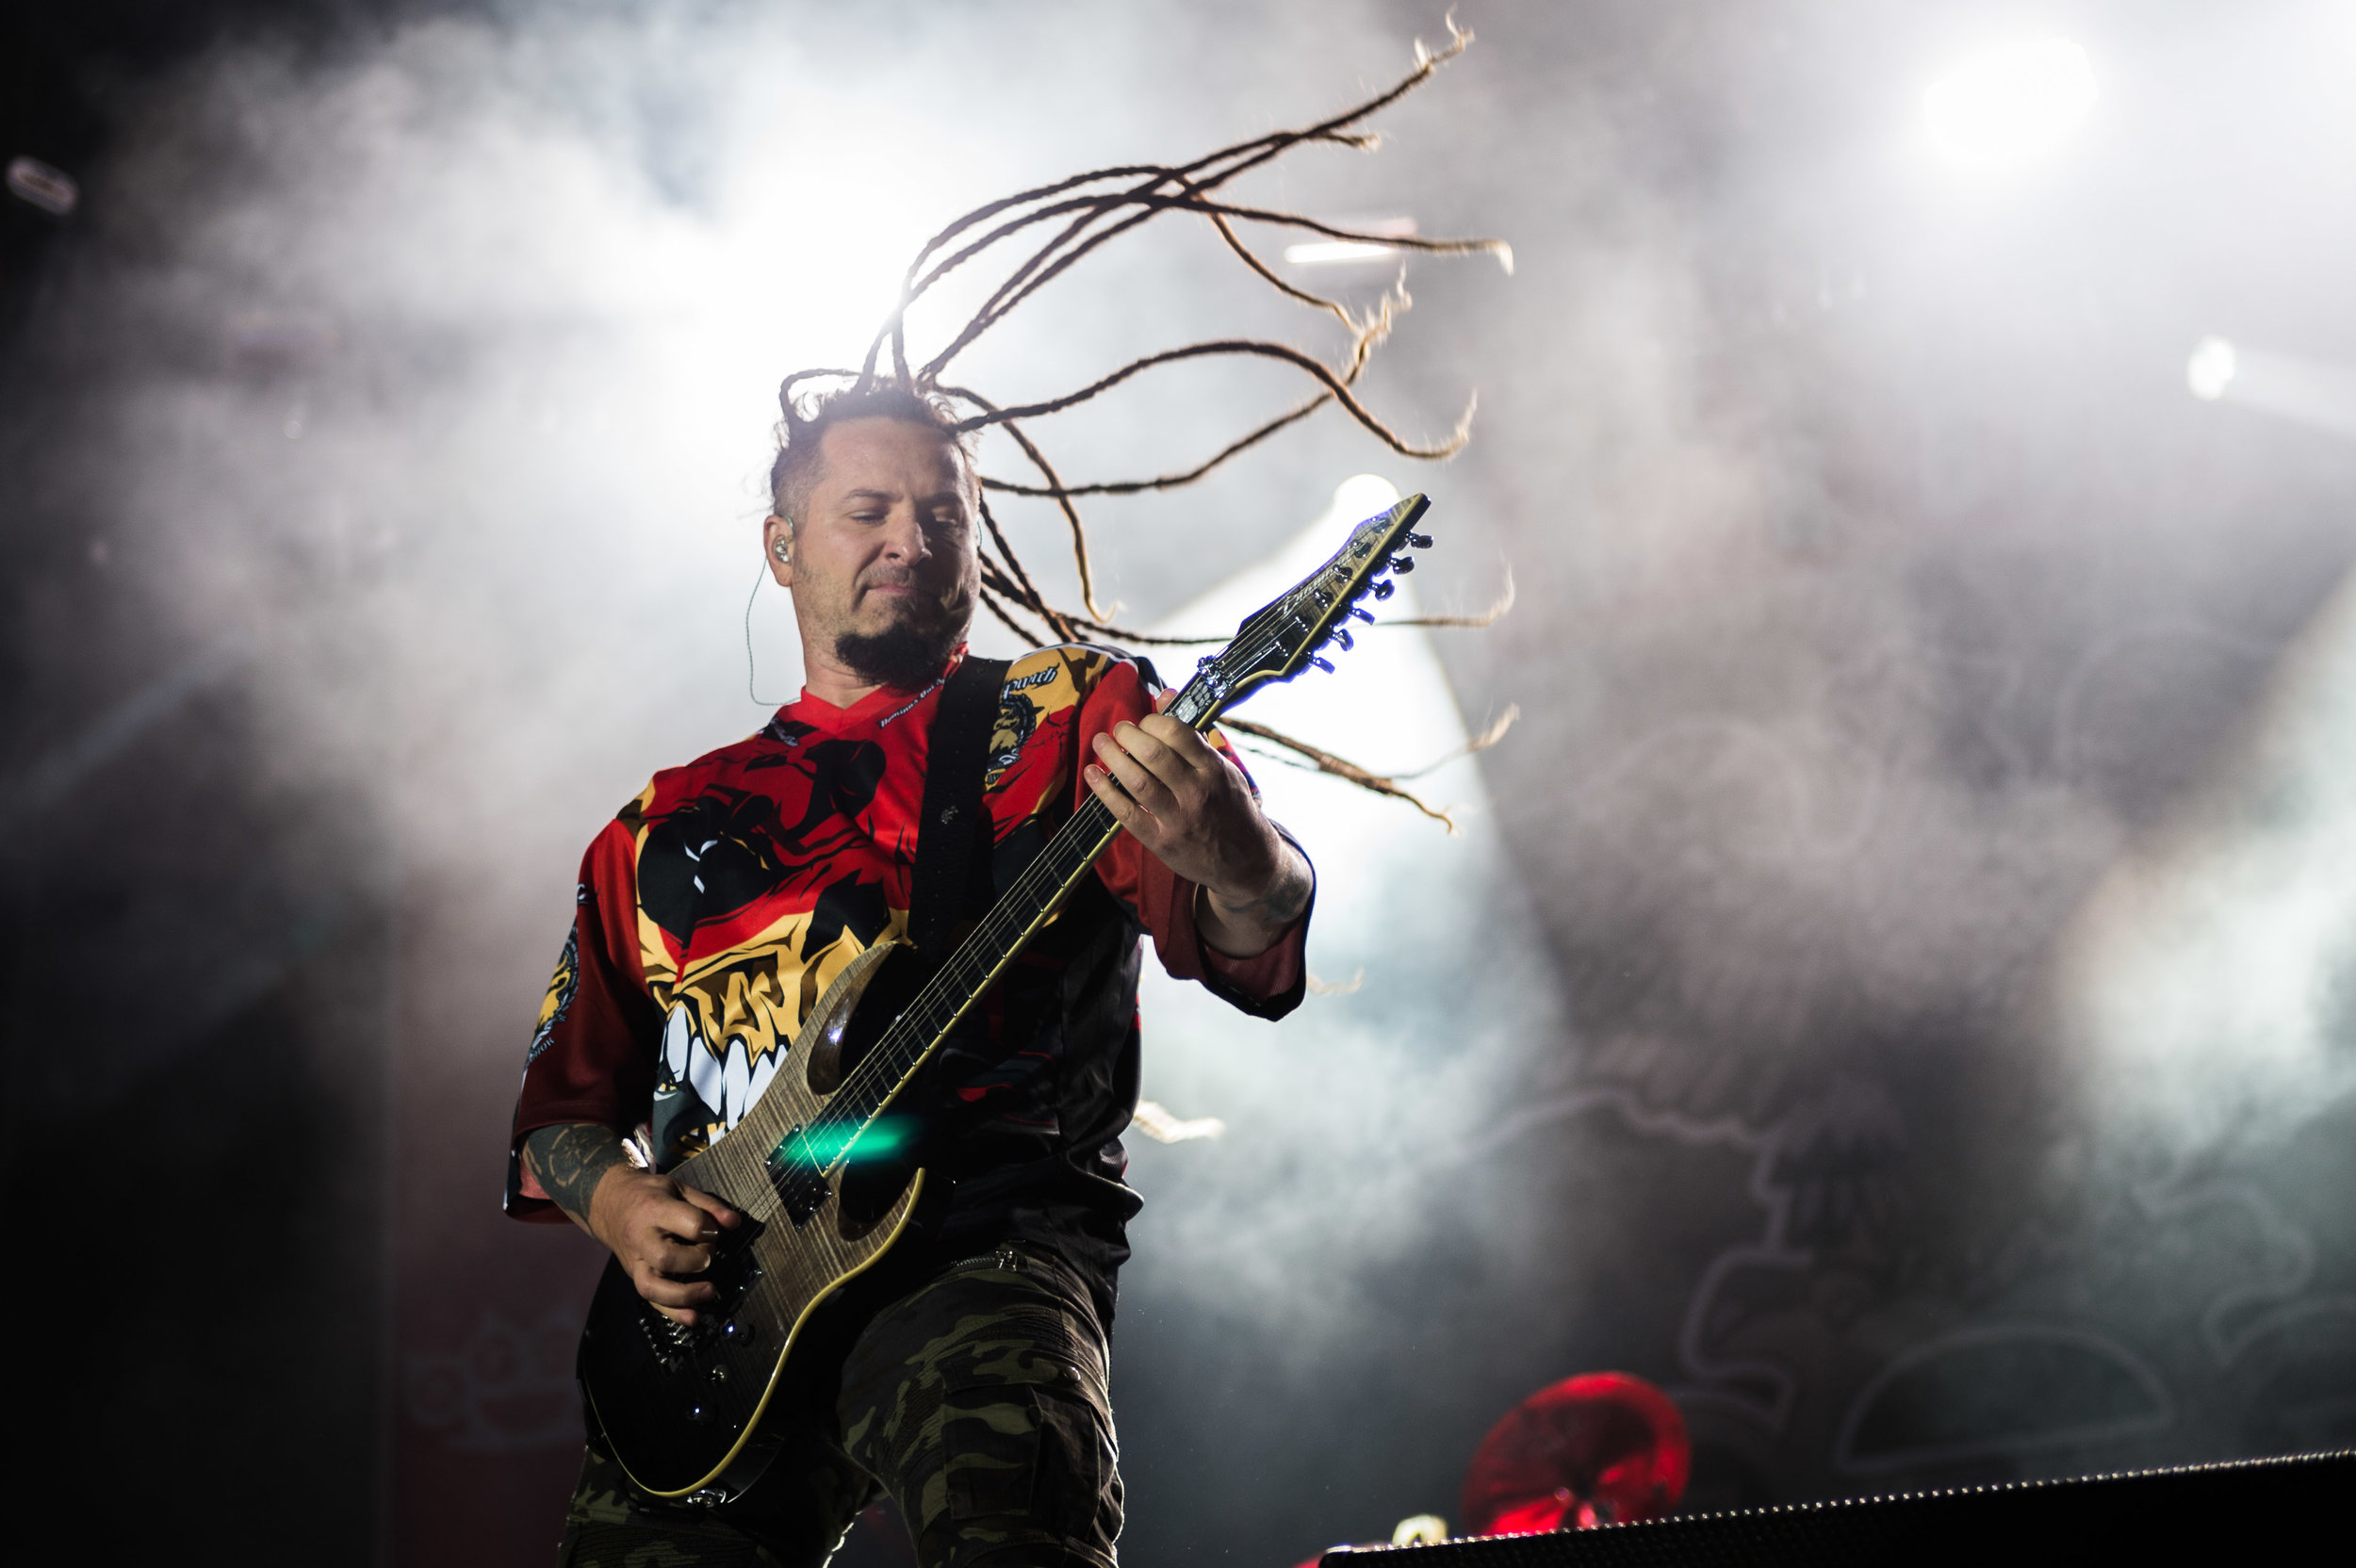 Five Finger Death Punch Sep 30 2017-1.jpg